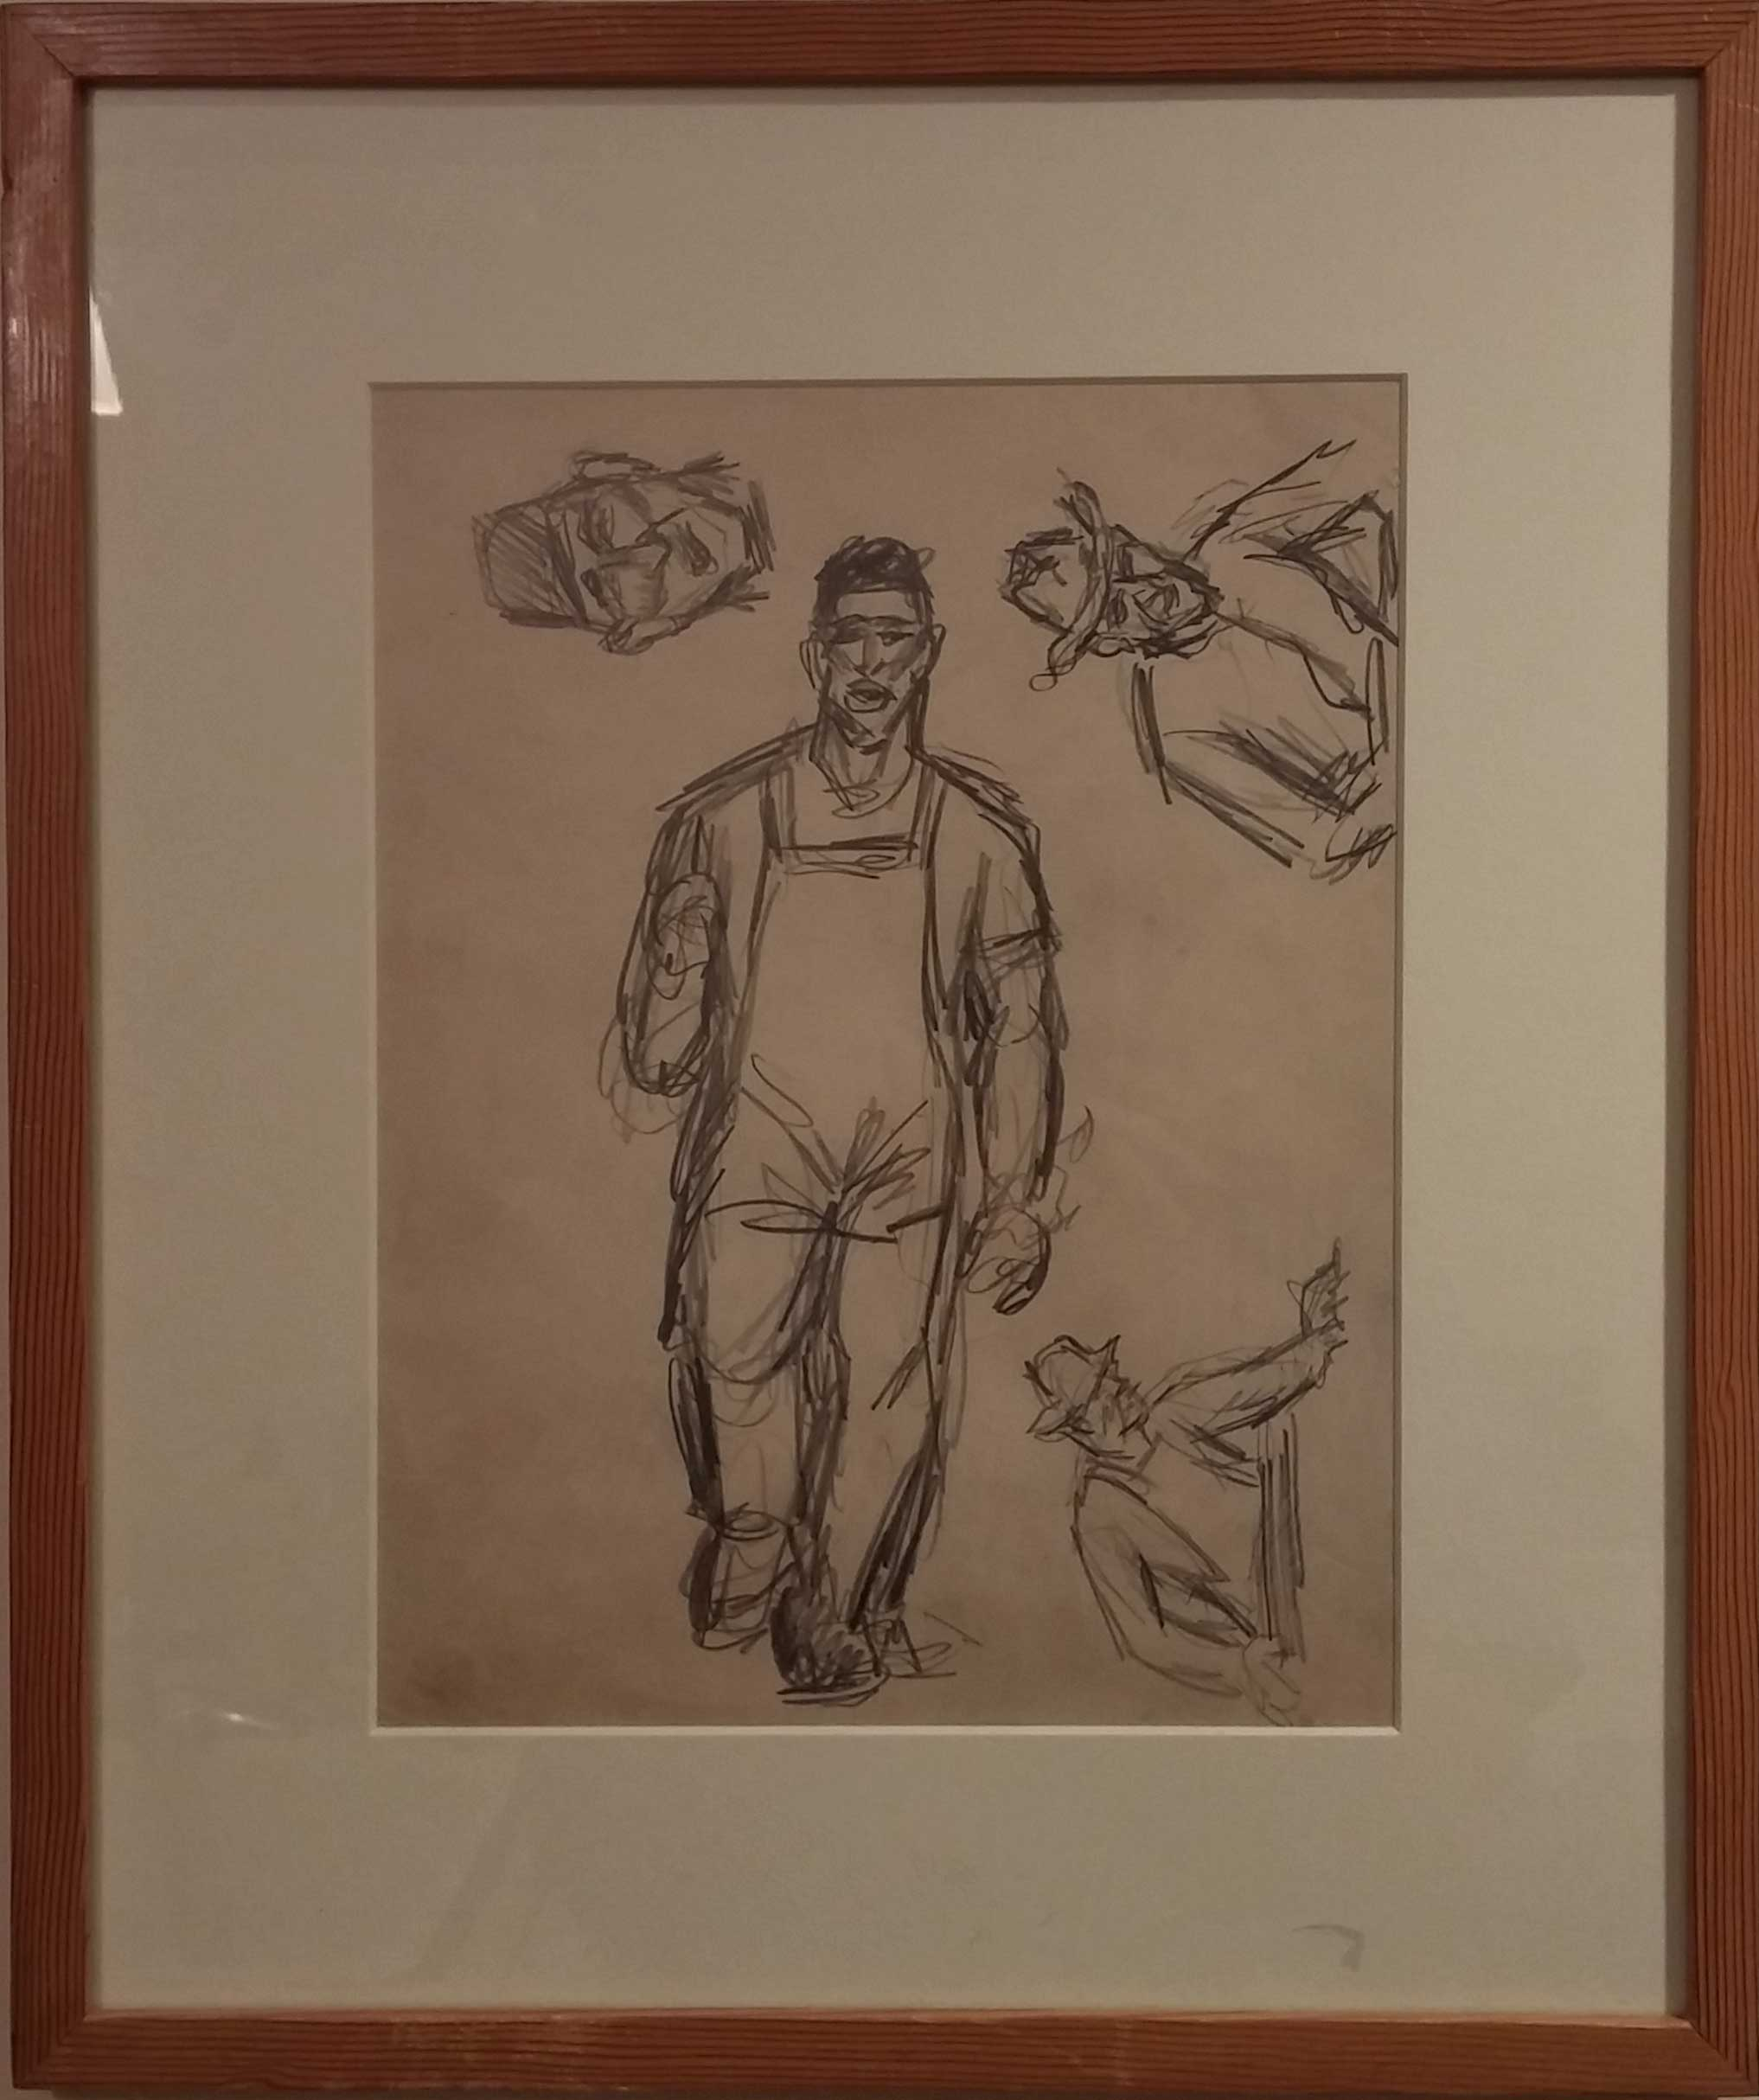 Shipyard Worker II,  pencil sketch, 14x17  Pathways Private Collection